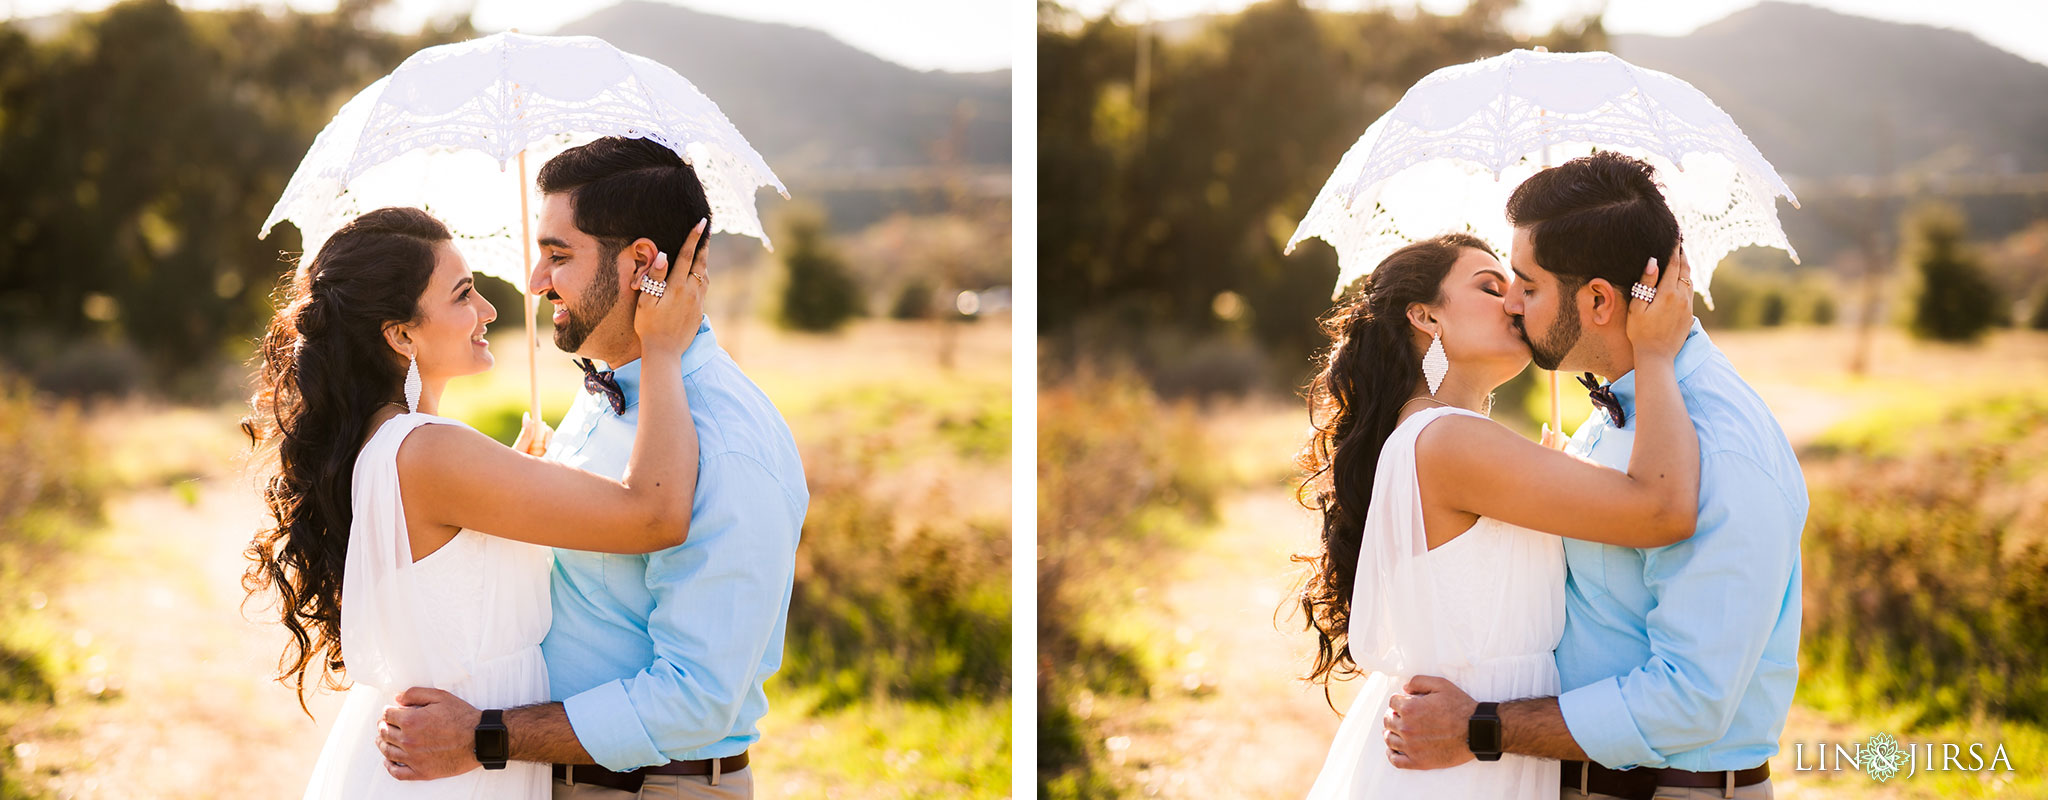 06 james dilley preserve orange county engagement photography